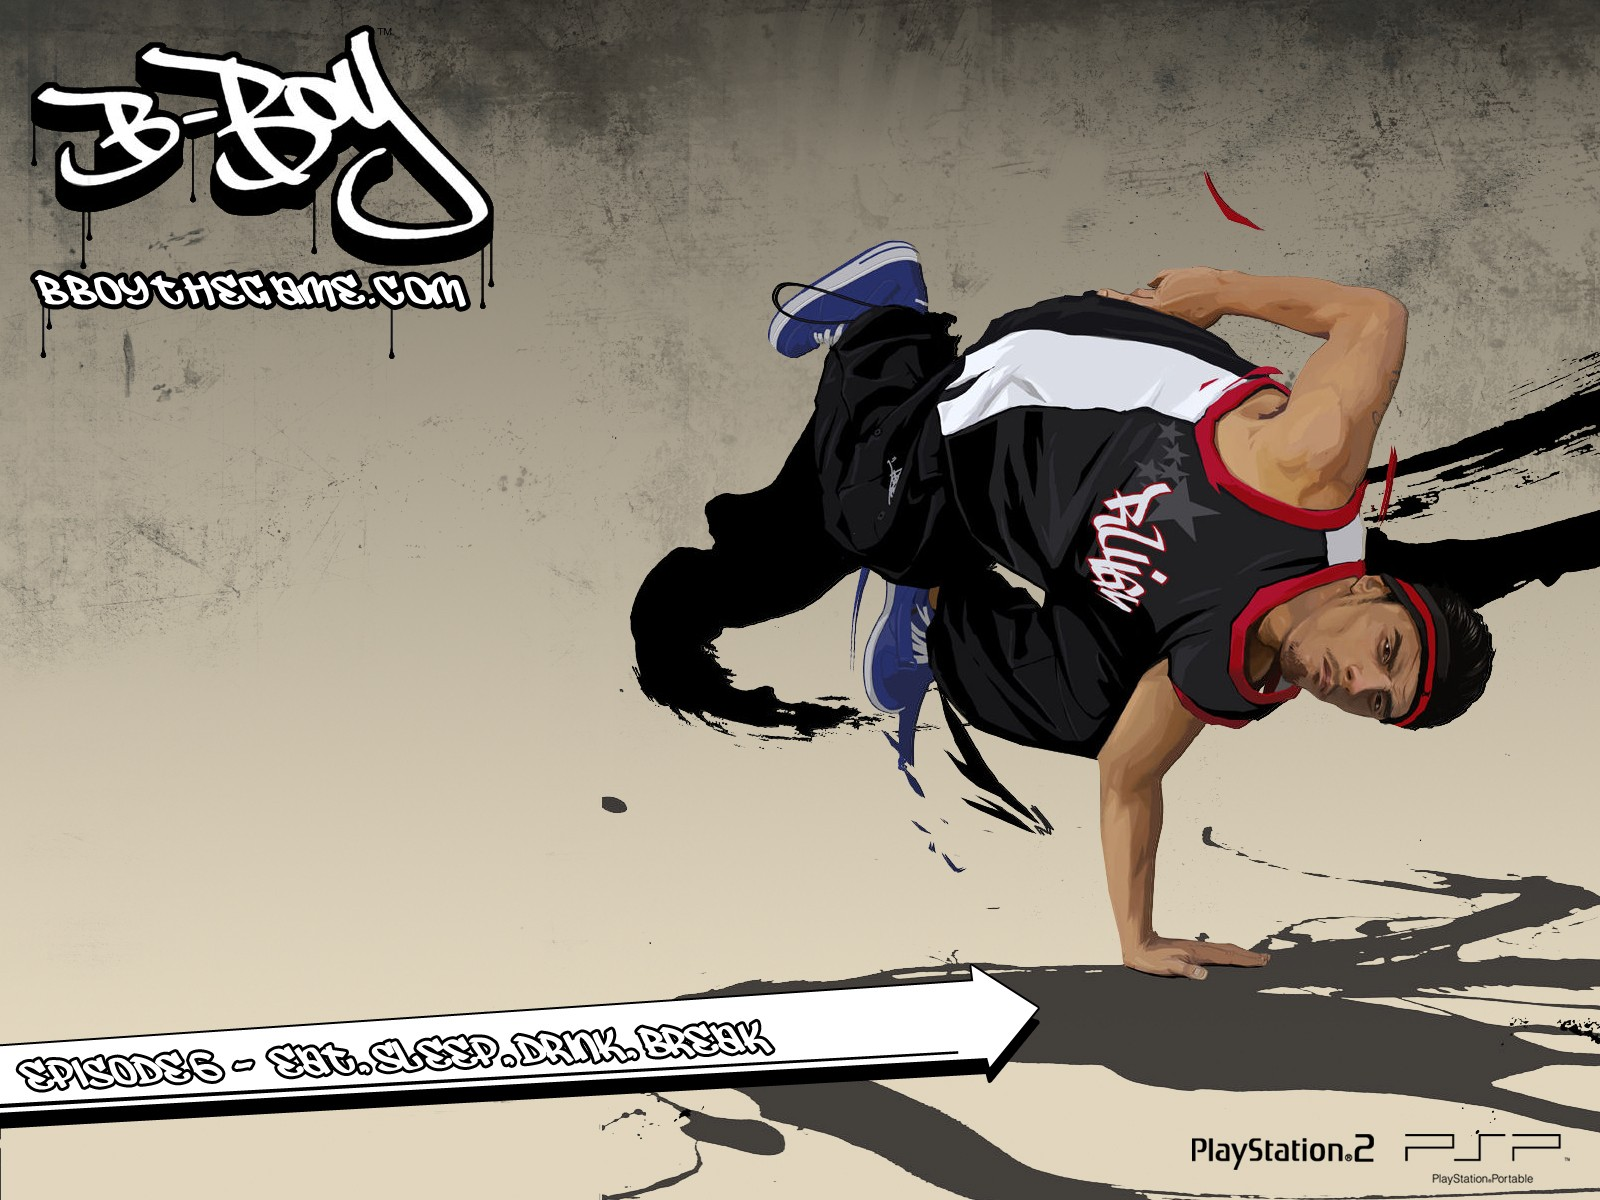 Bboy City 18 in Austin